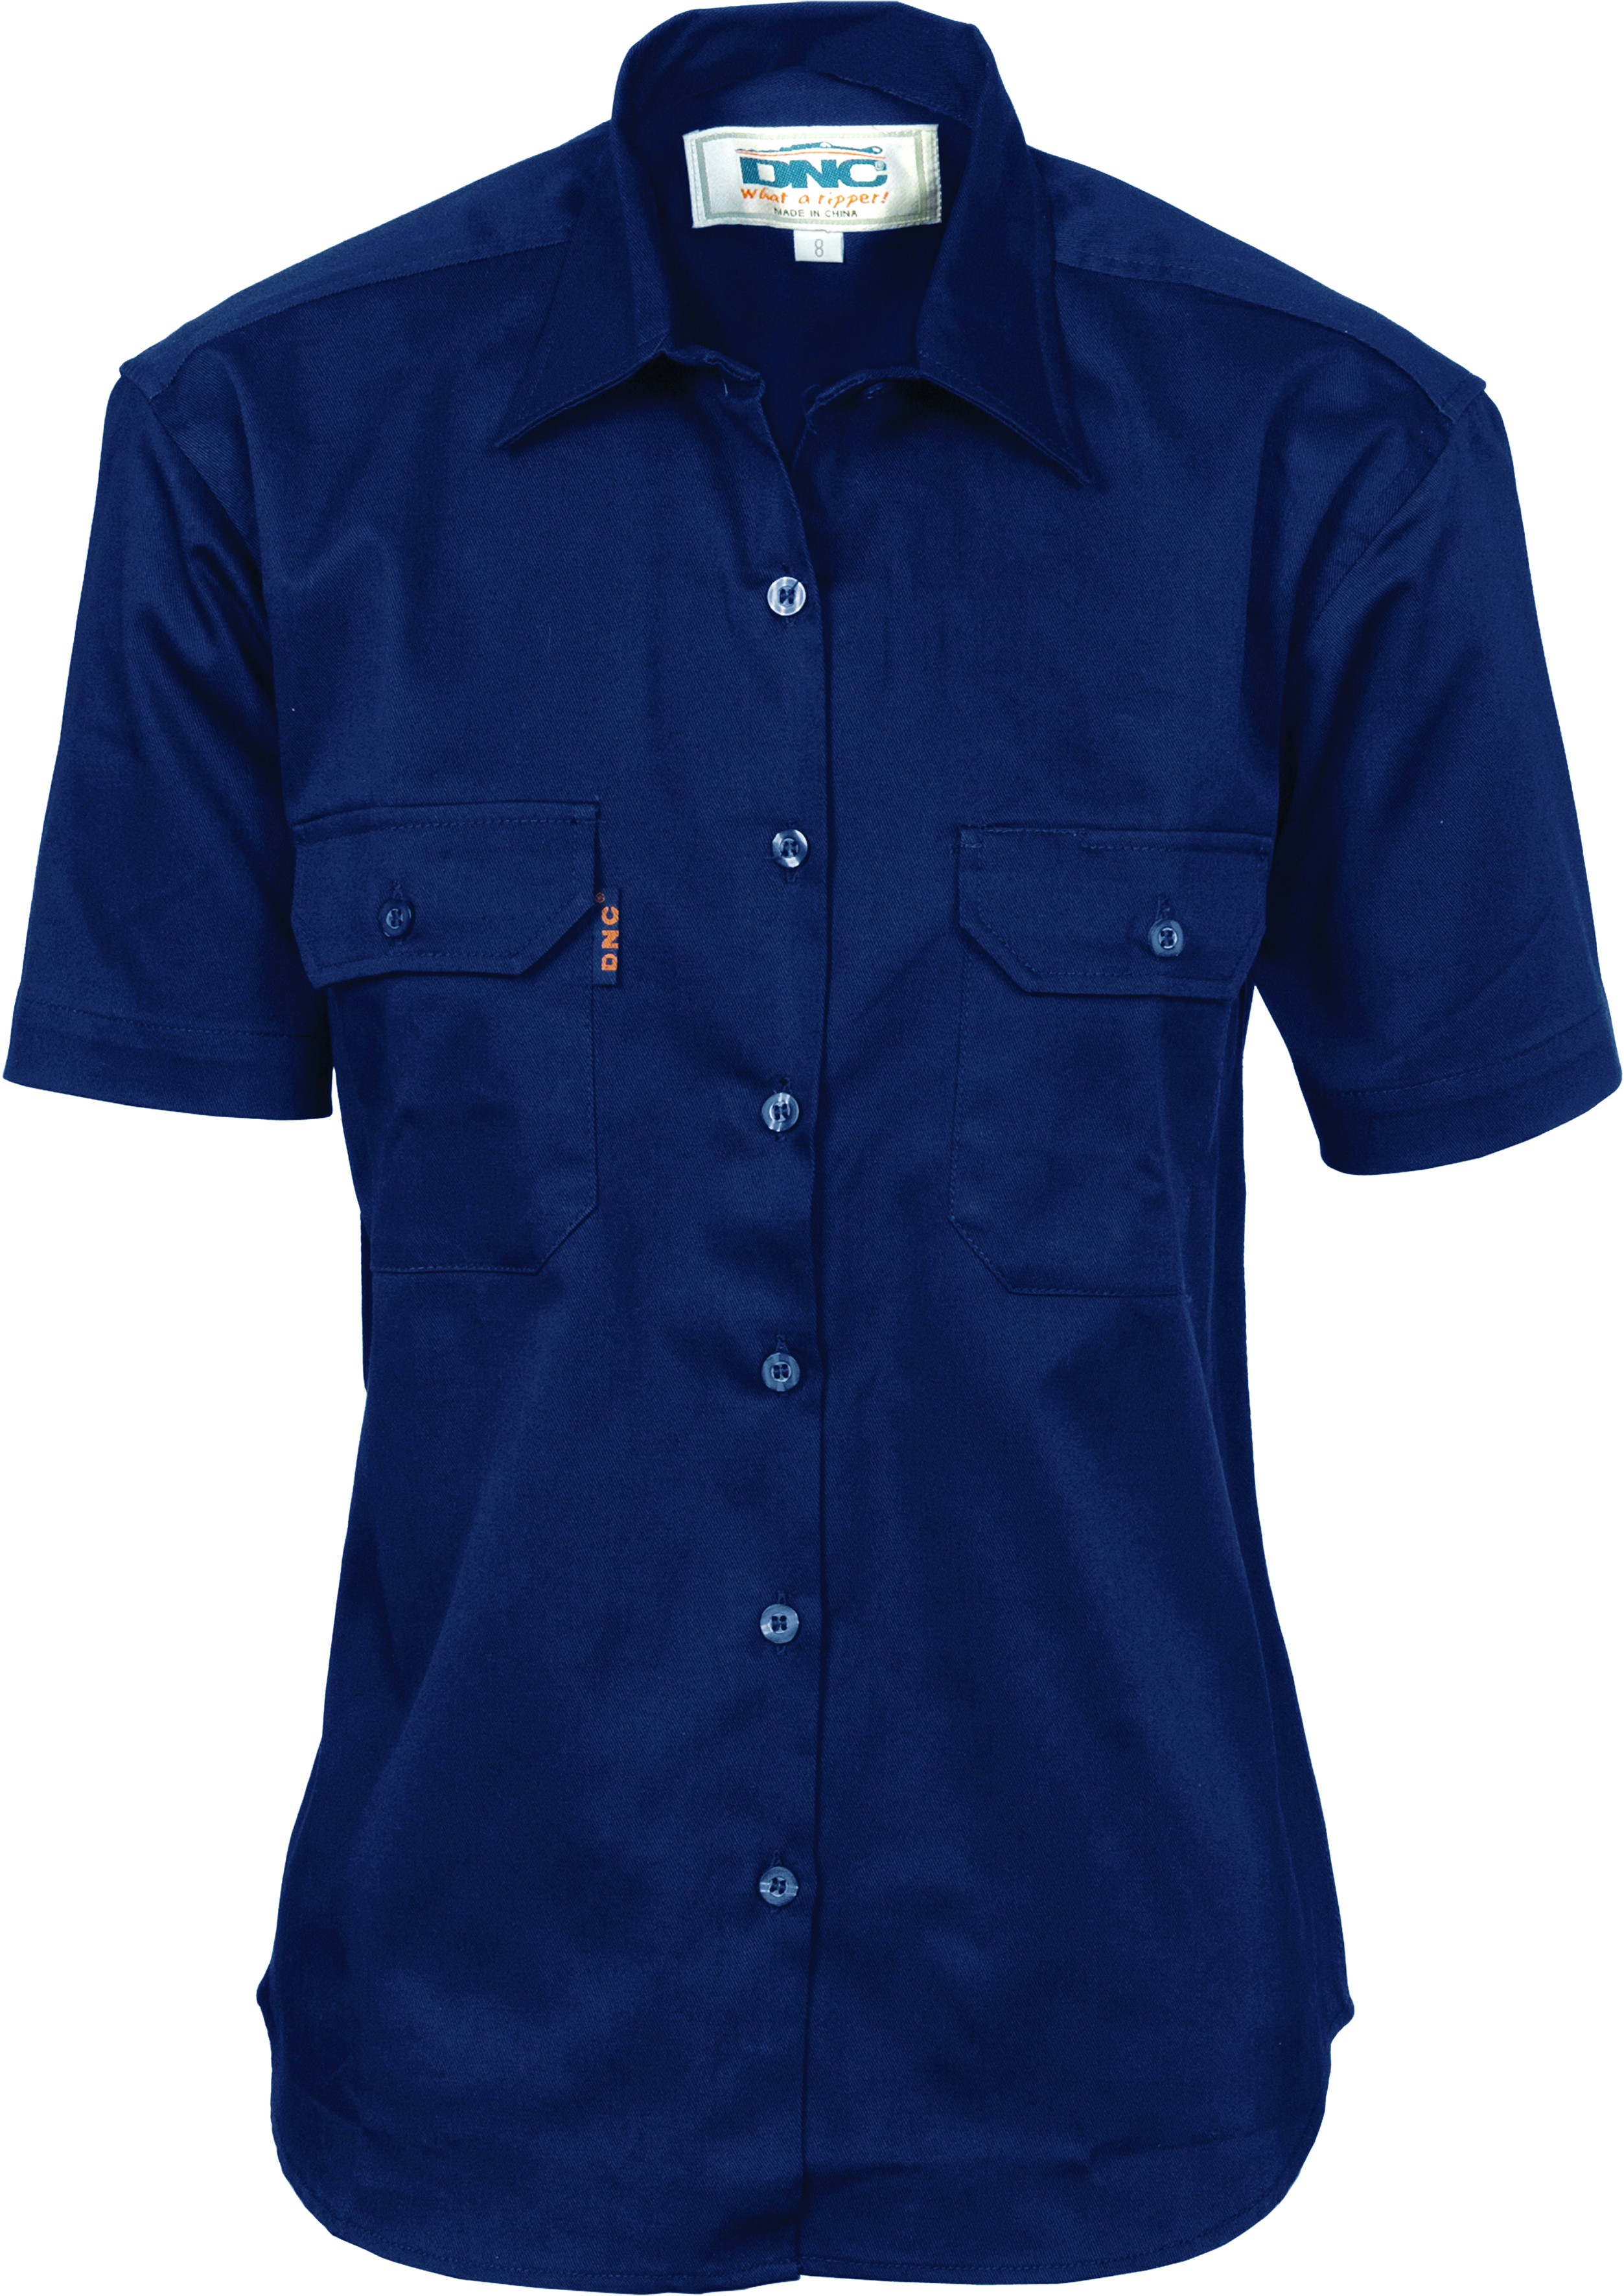 Ladies Cotton Drill Work Shirt - Short Sleeve